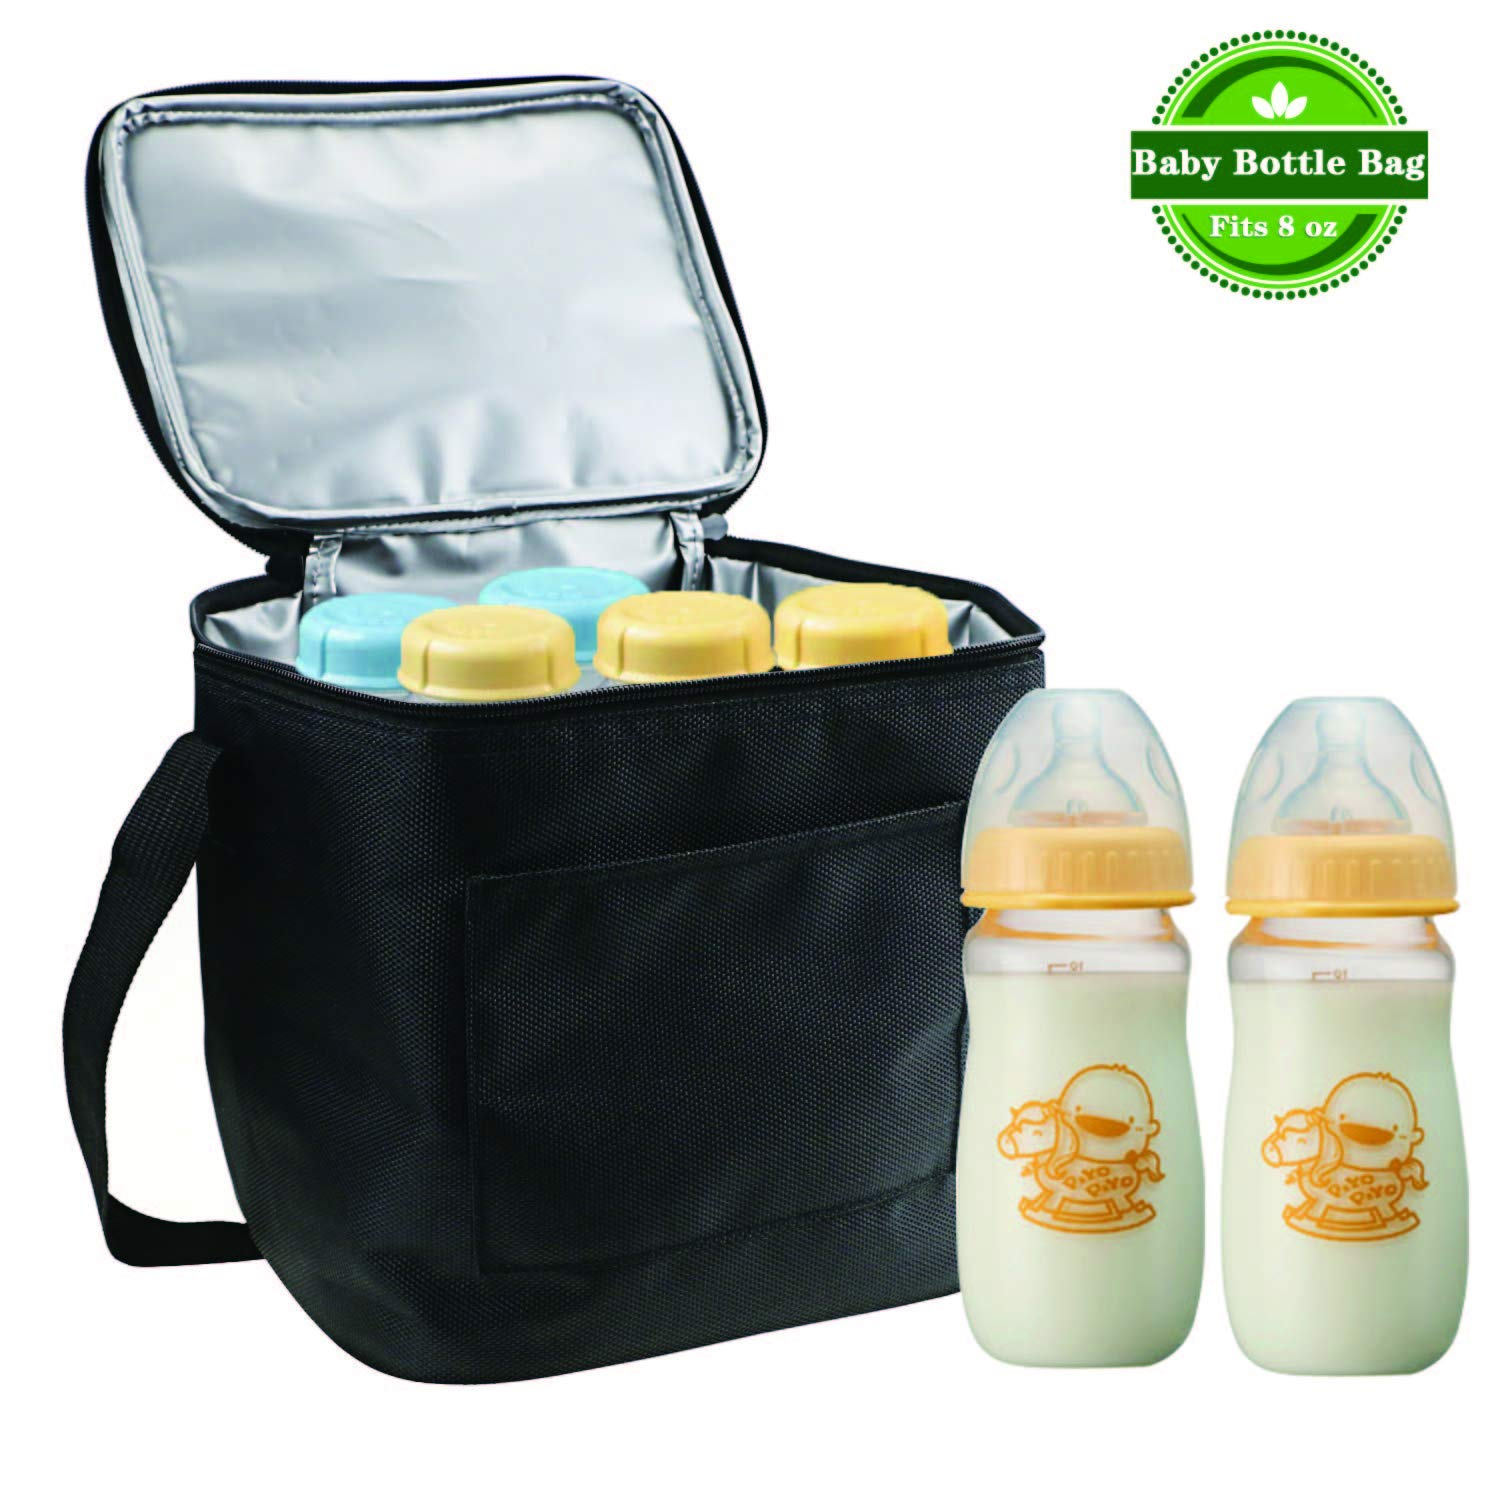 Update Material - Gifort Baby Bottle Cooler Bag, Breastmilk Insulated Cooler Tote Storage for Travel Or Work, for Cooler Tote Storage, Black (Fits up to Most 8 Oz. Bottles)